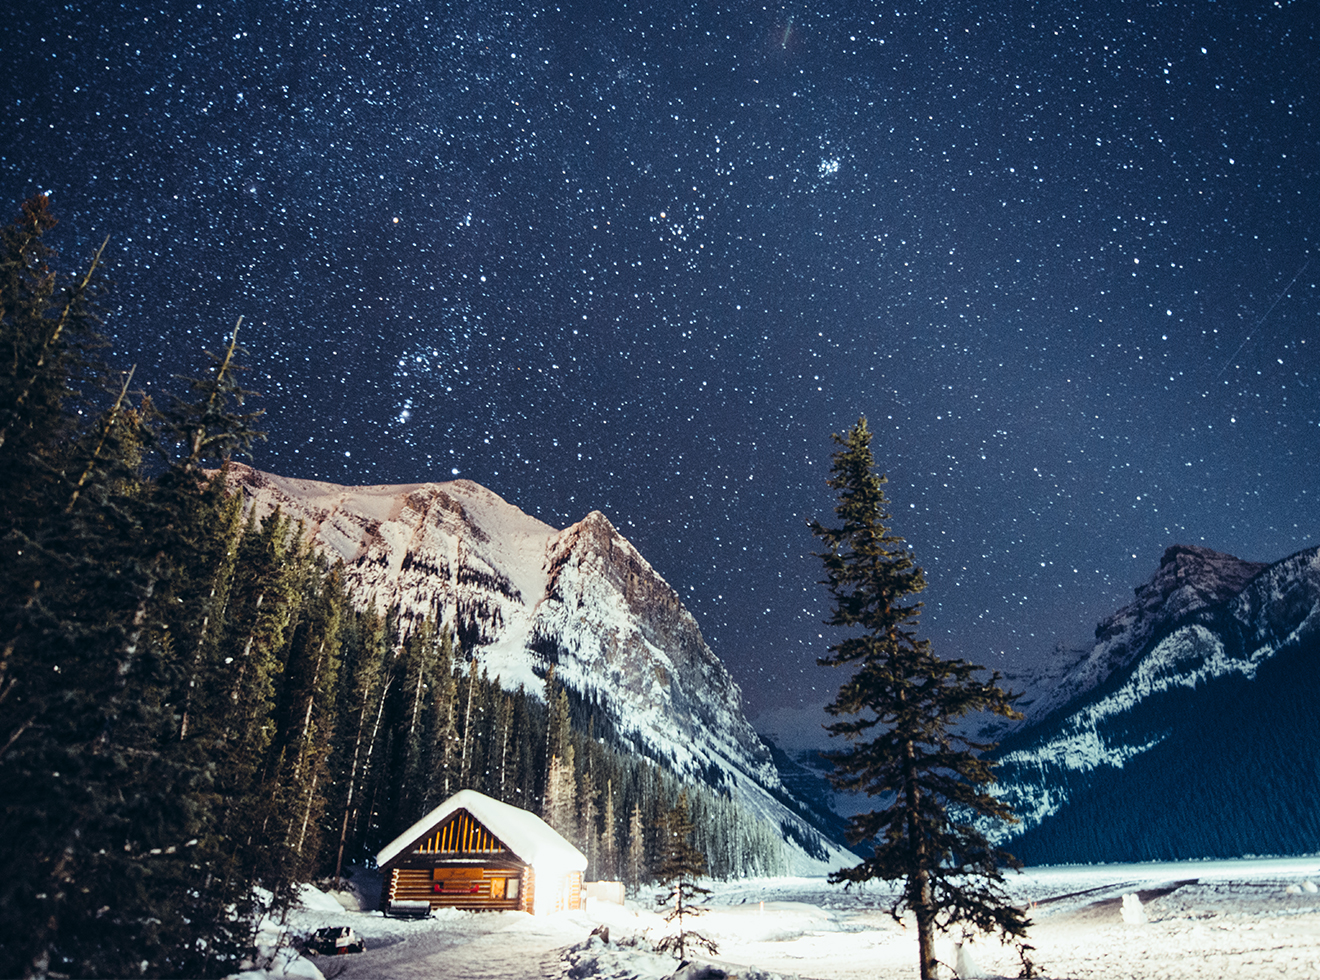 Milky way over Lake Louise in Banff National Park Winter